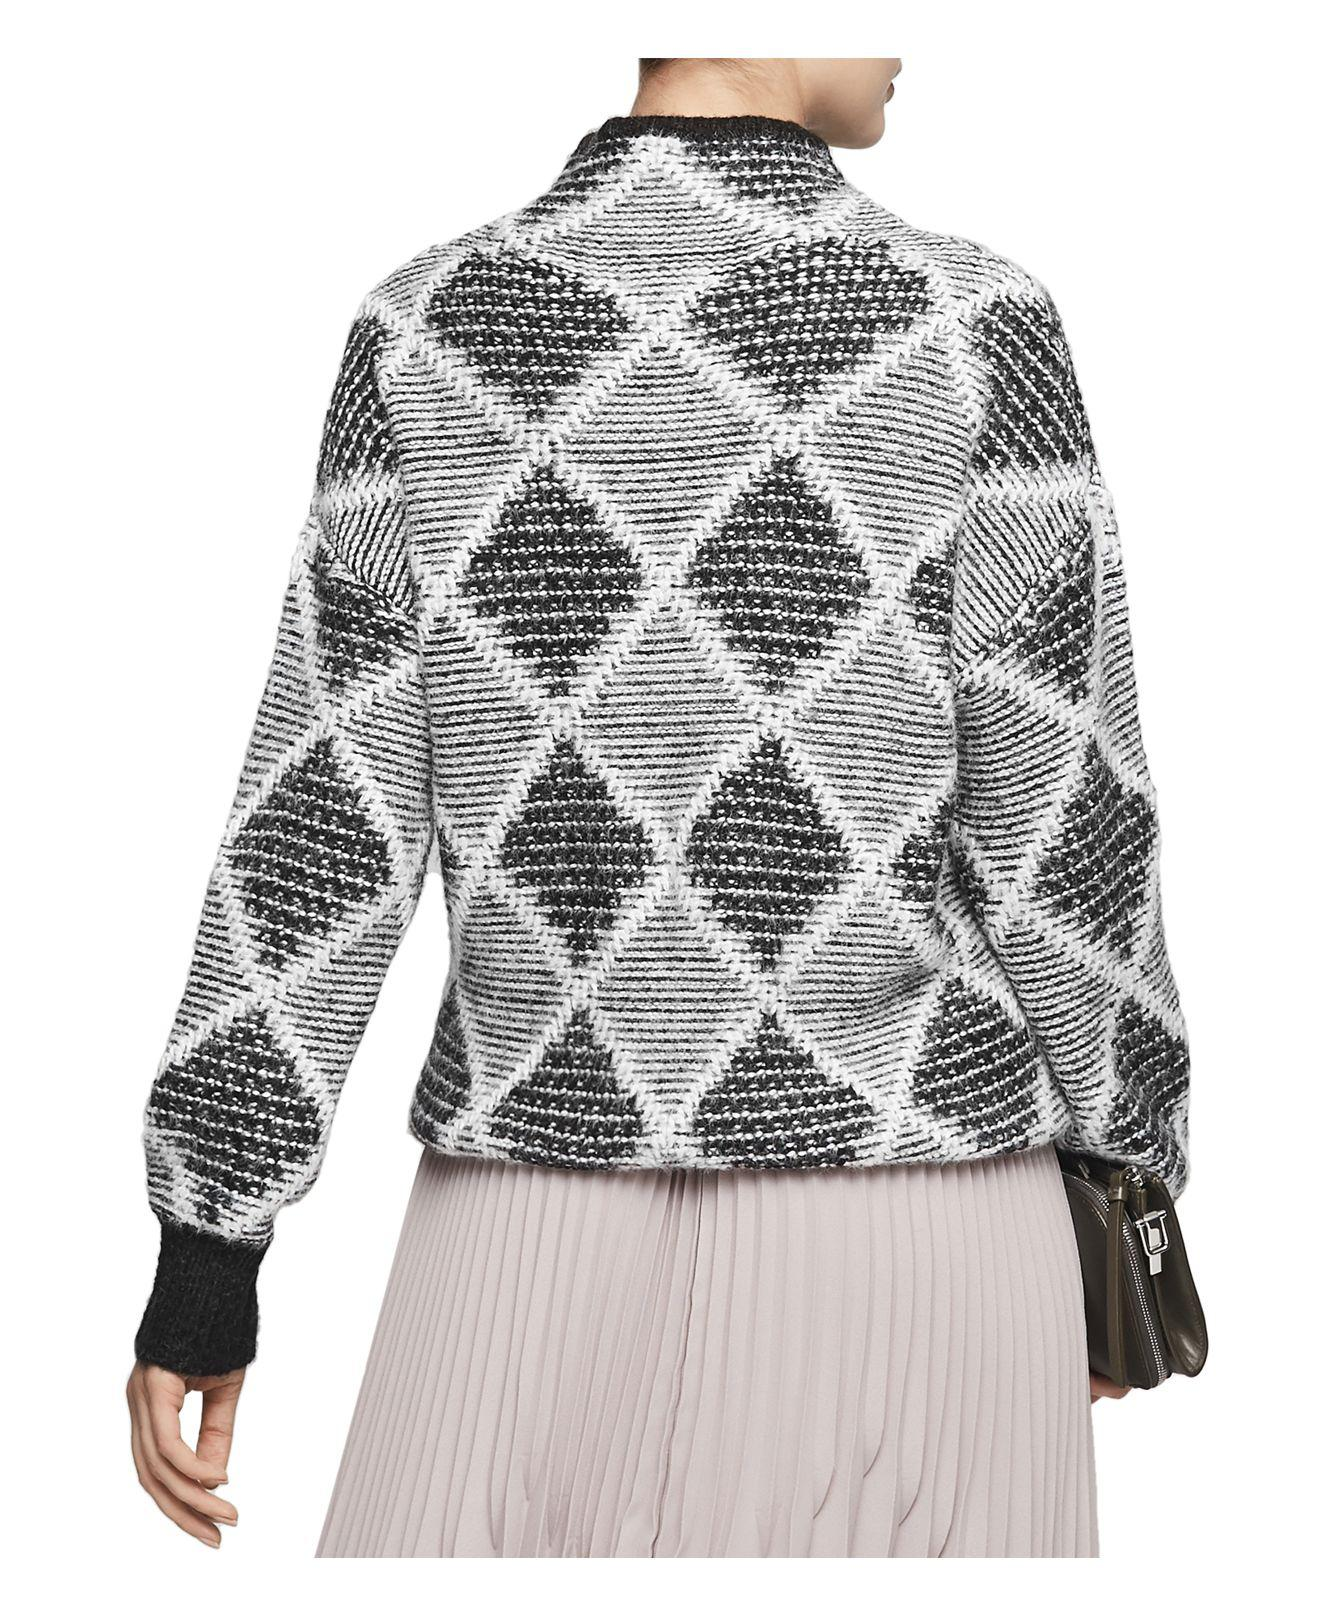 6be392cc3 Lyst - Reiss Sophie Patterned Sweater